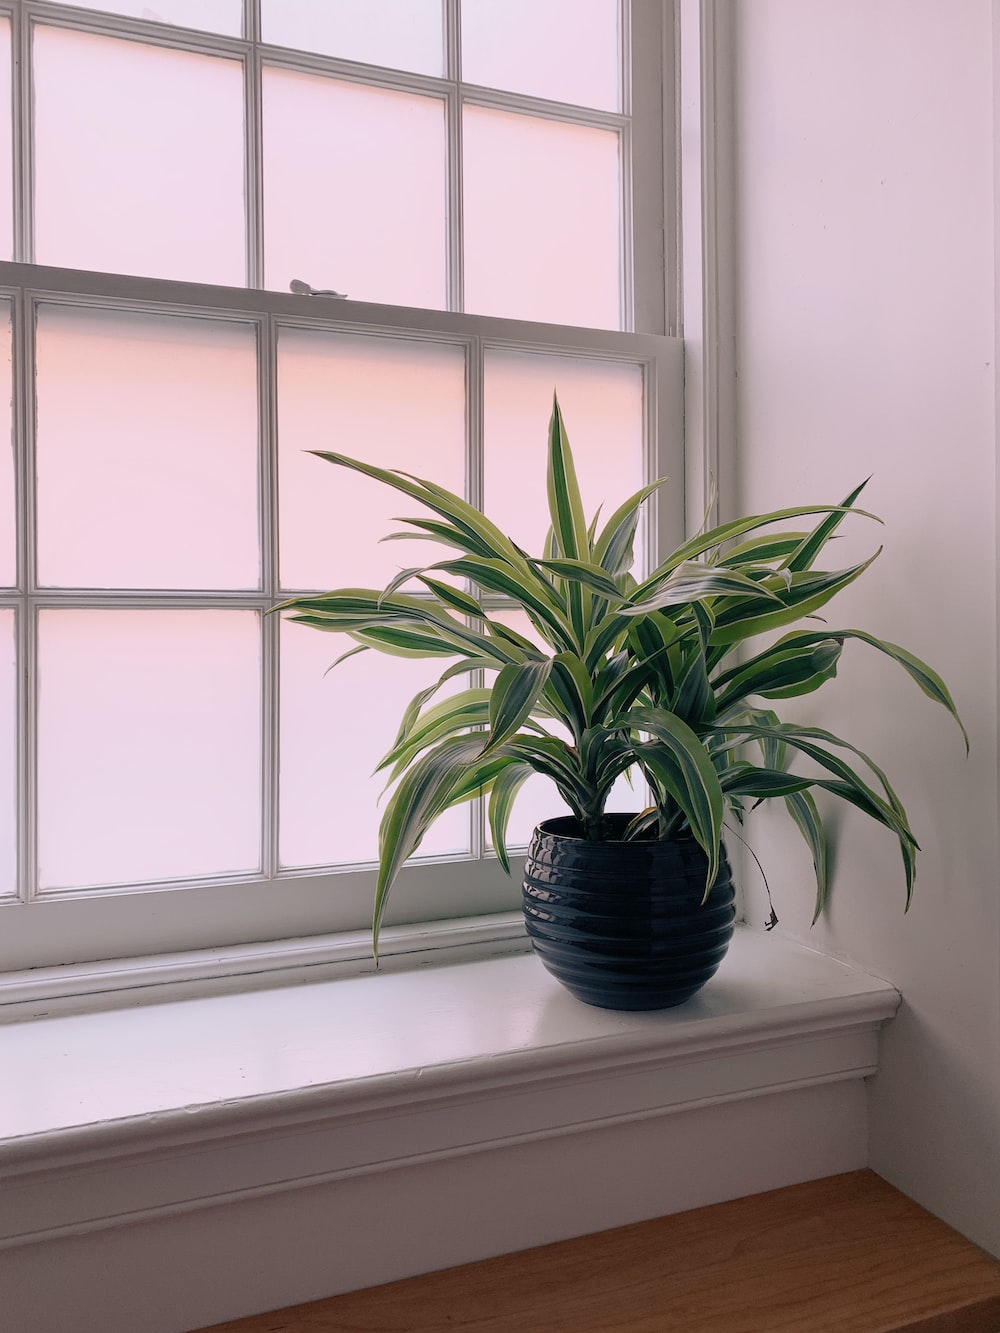 green linear plant on black pot near window panel